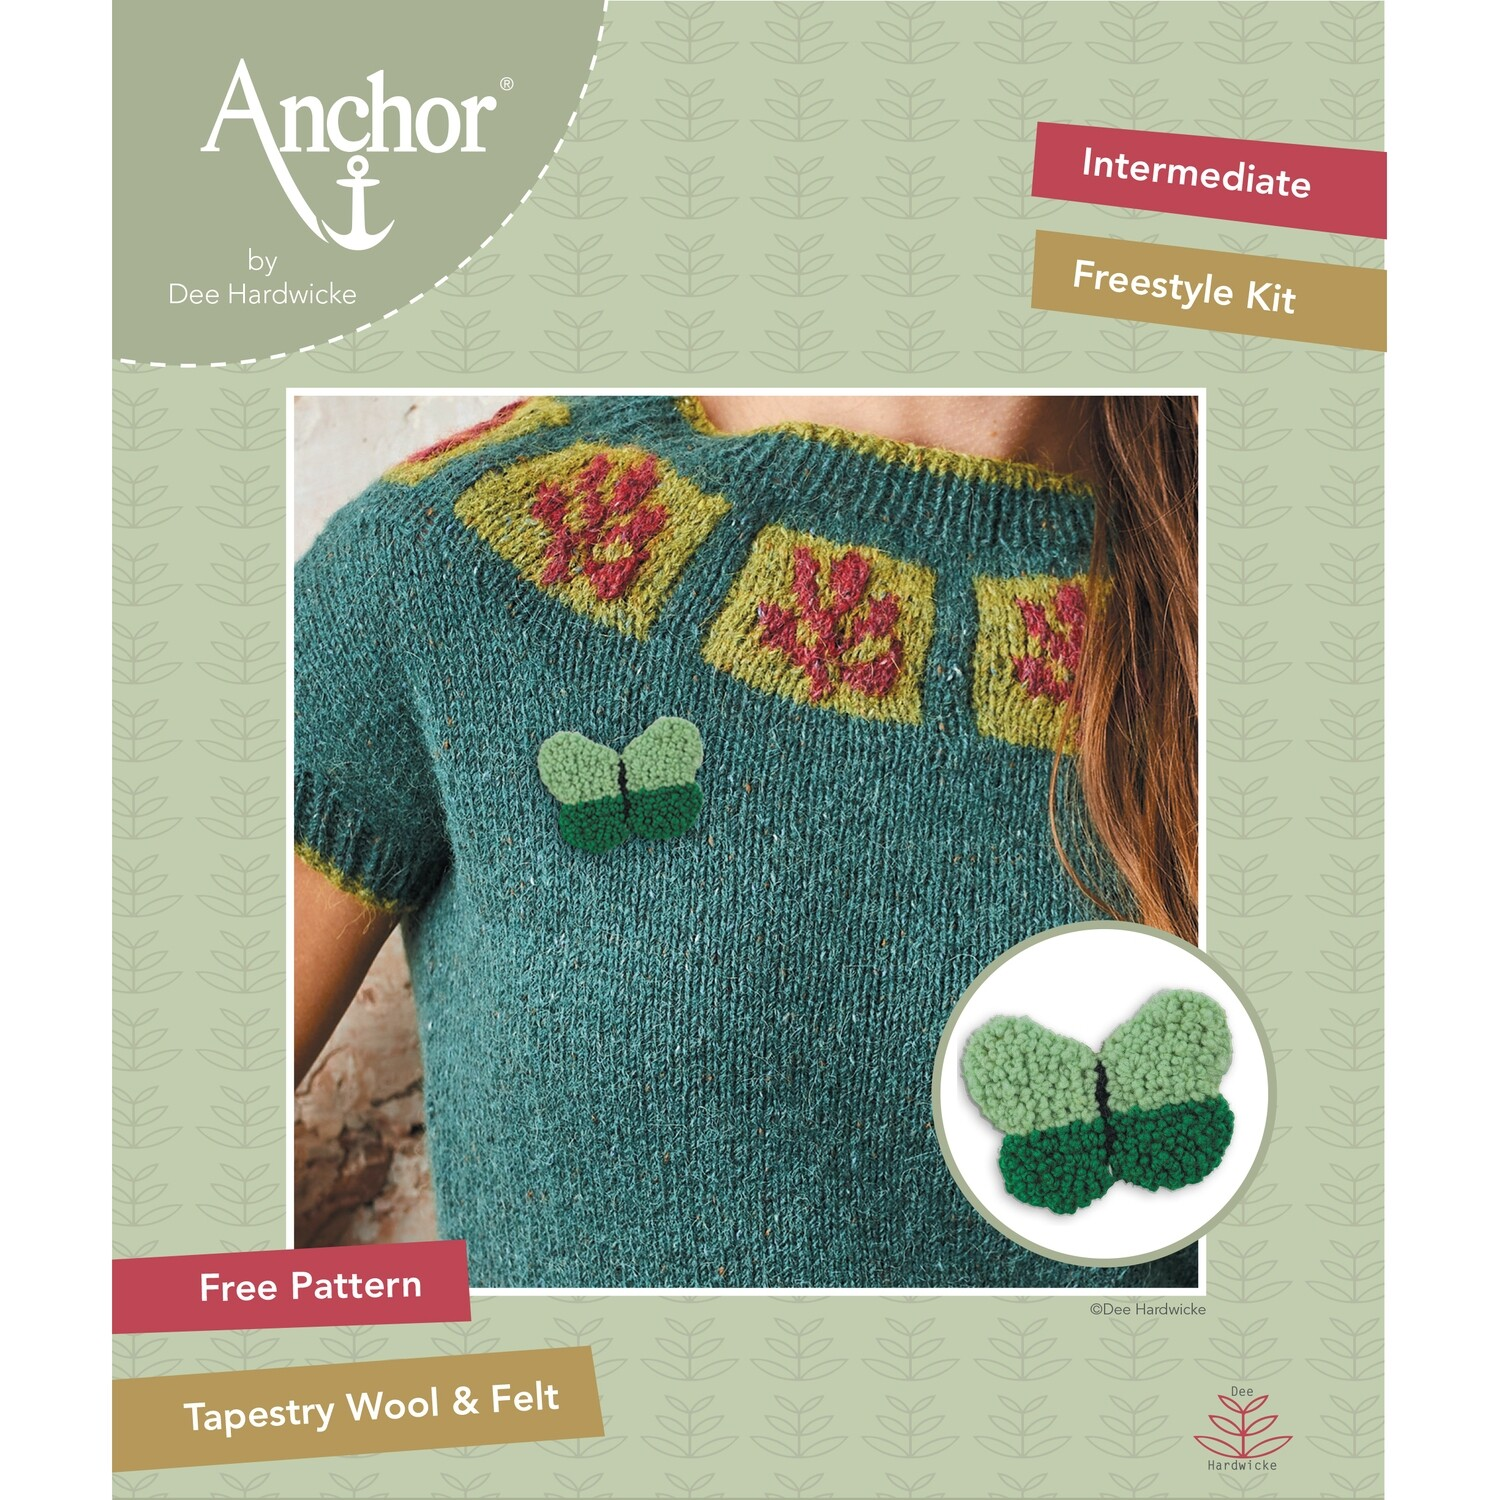 Anchor by Dee Hardwicke - Green Butterfly Freestyle Kit